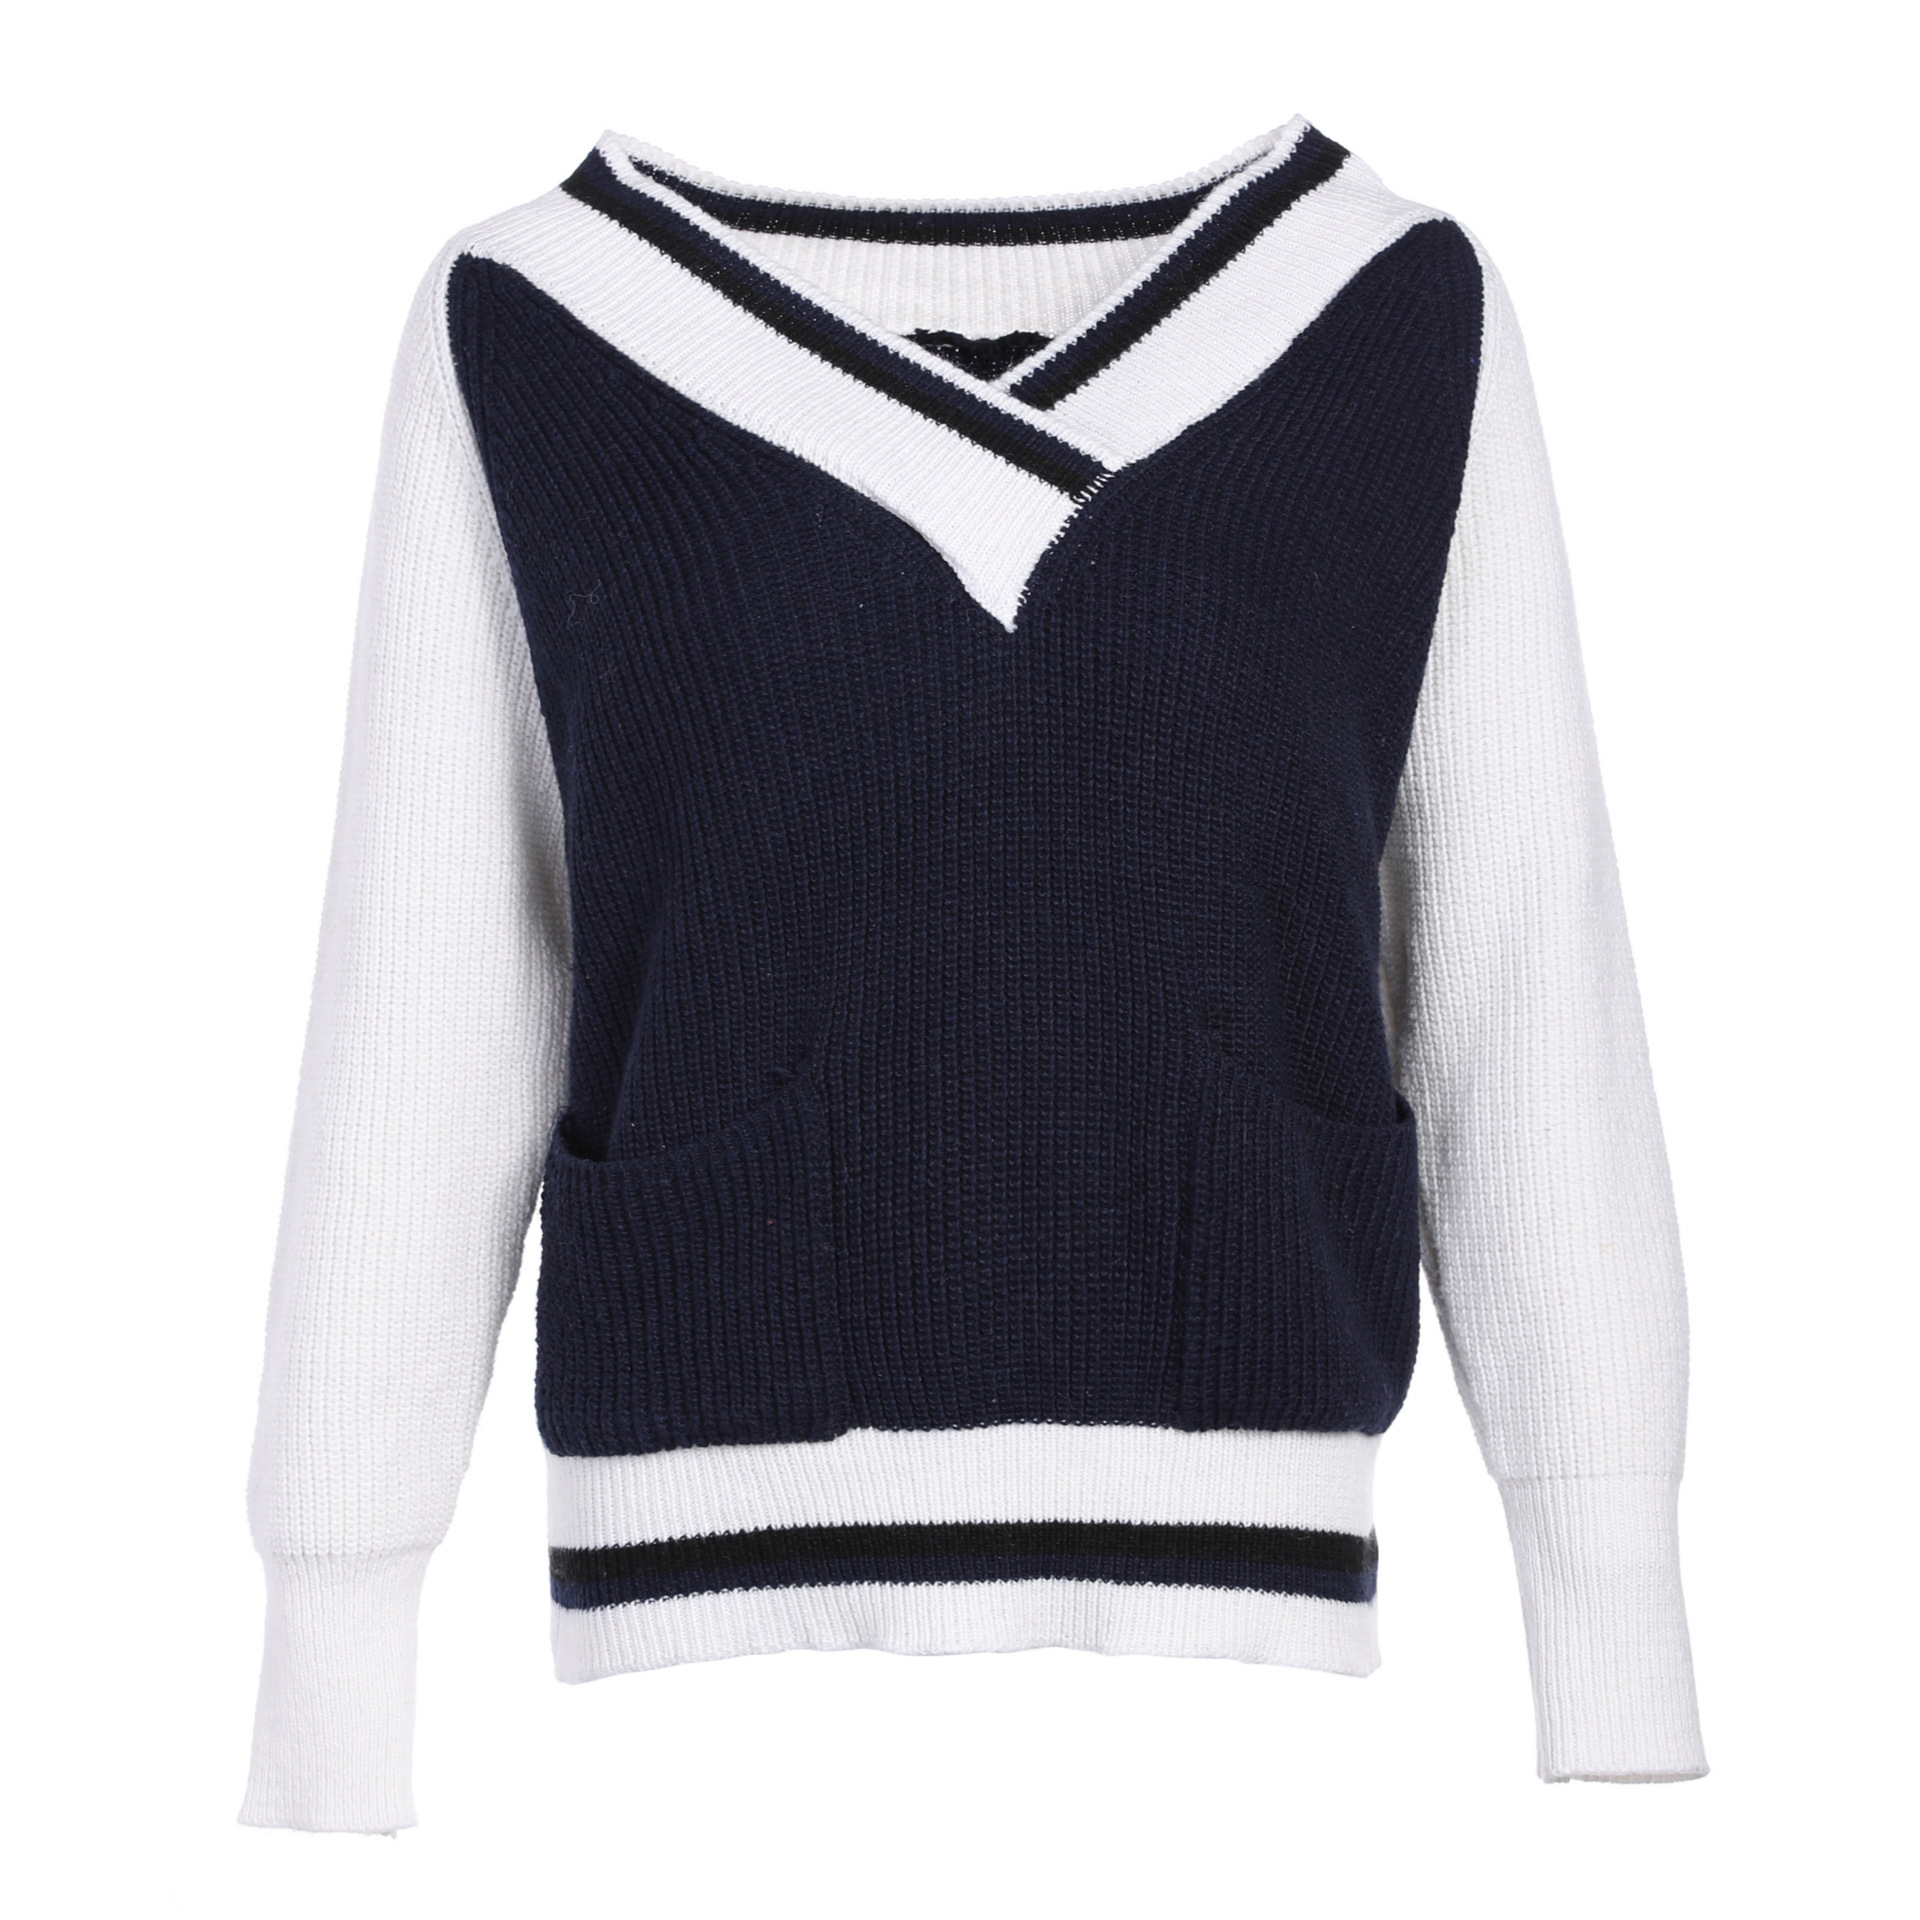 f1f6673527b Sweater Women England Style Striped V neck school Loose navy blue Tops Leisure  Sweaters Knitted Pullovers -in Underwear from Mother   Kids on  Aliexpress.com ...